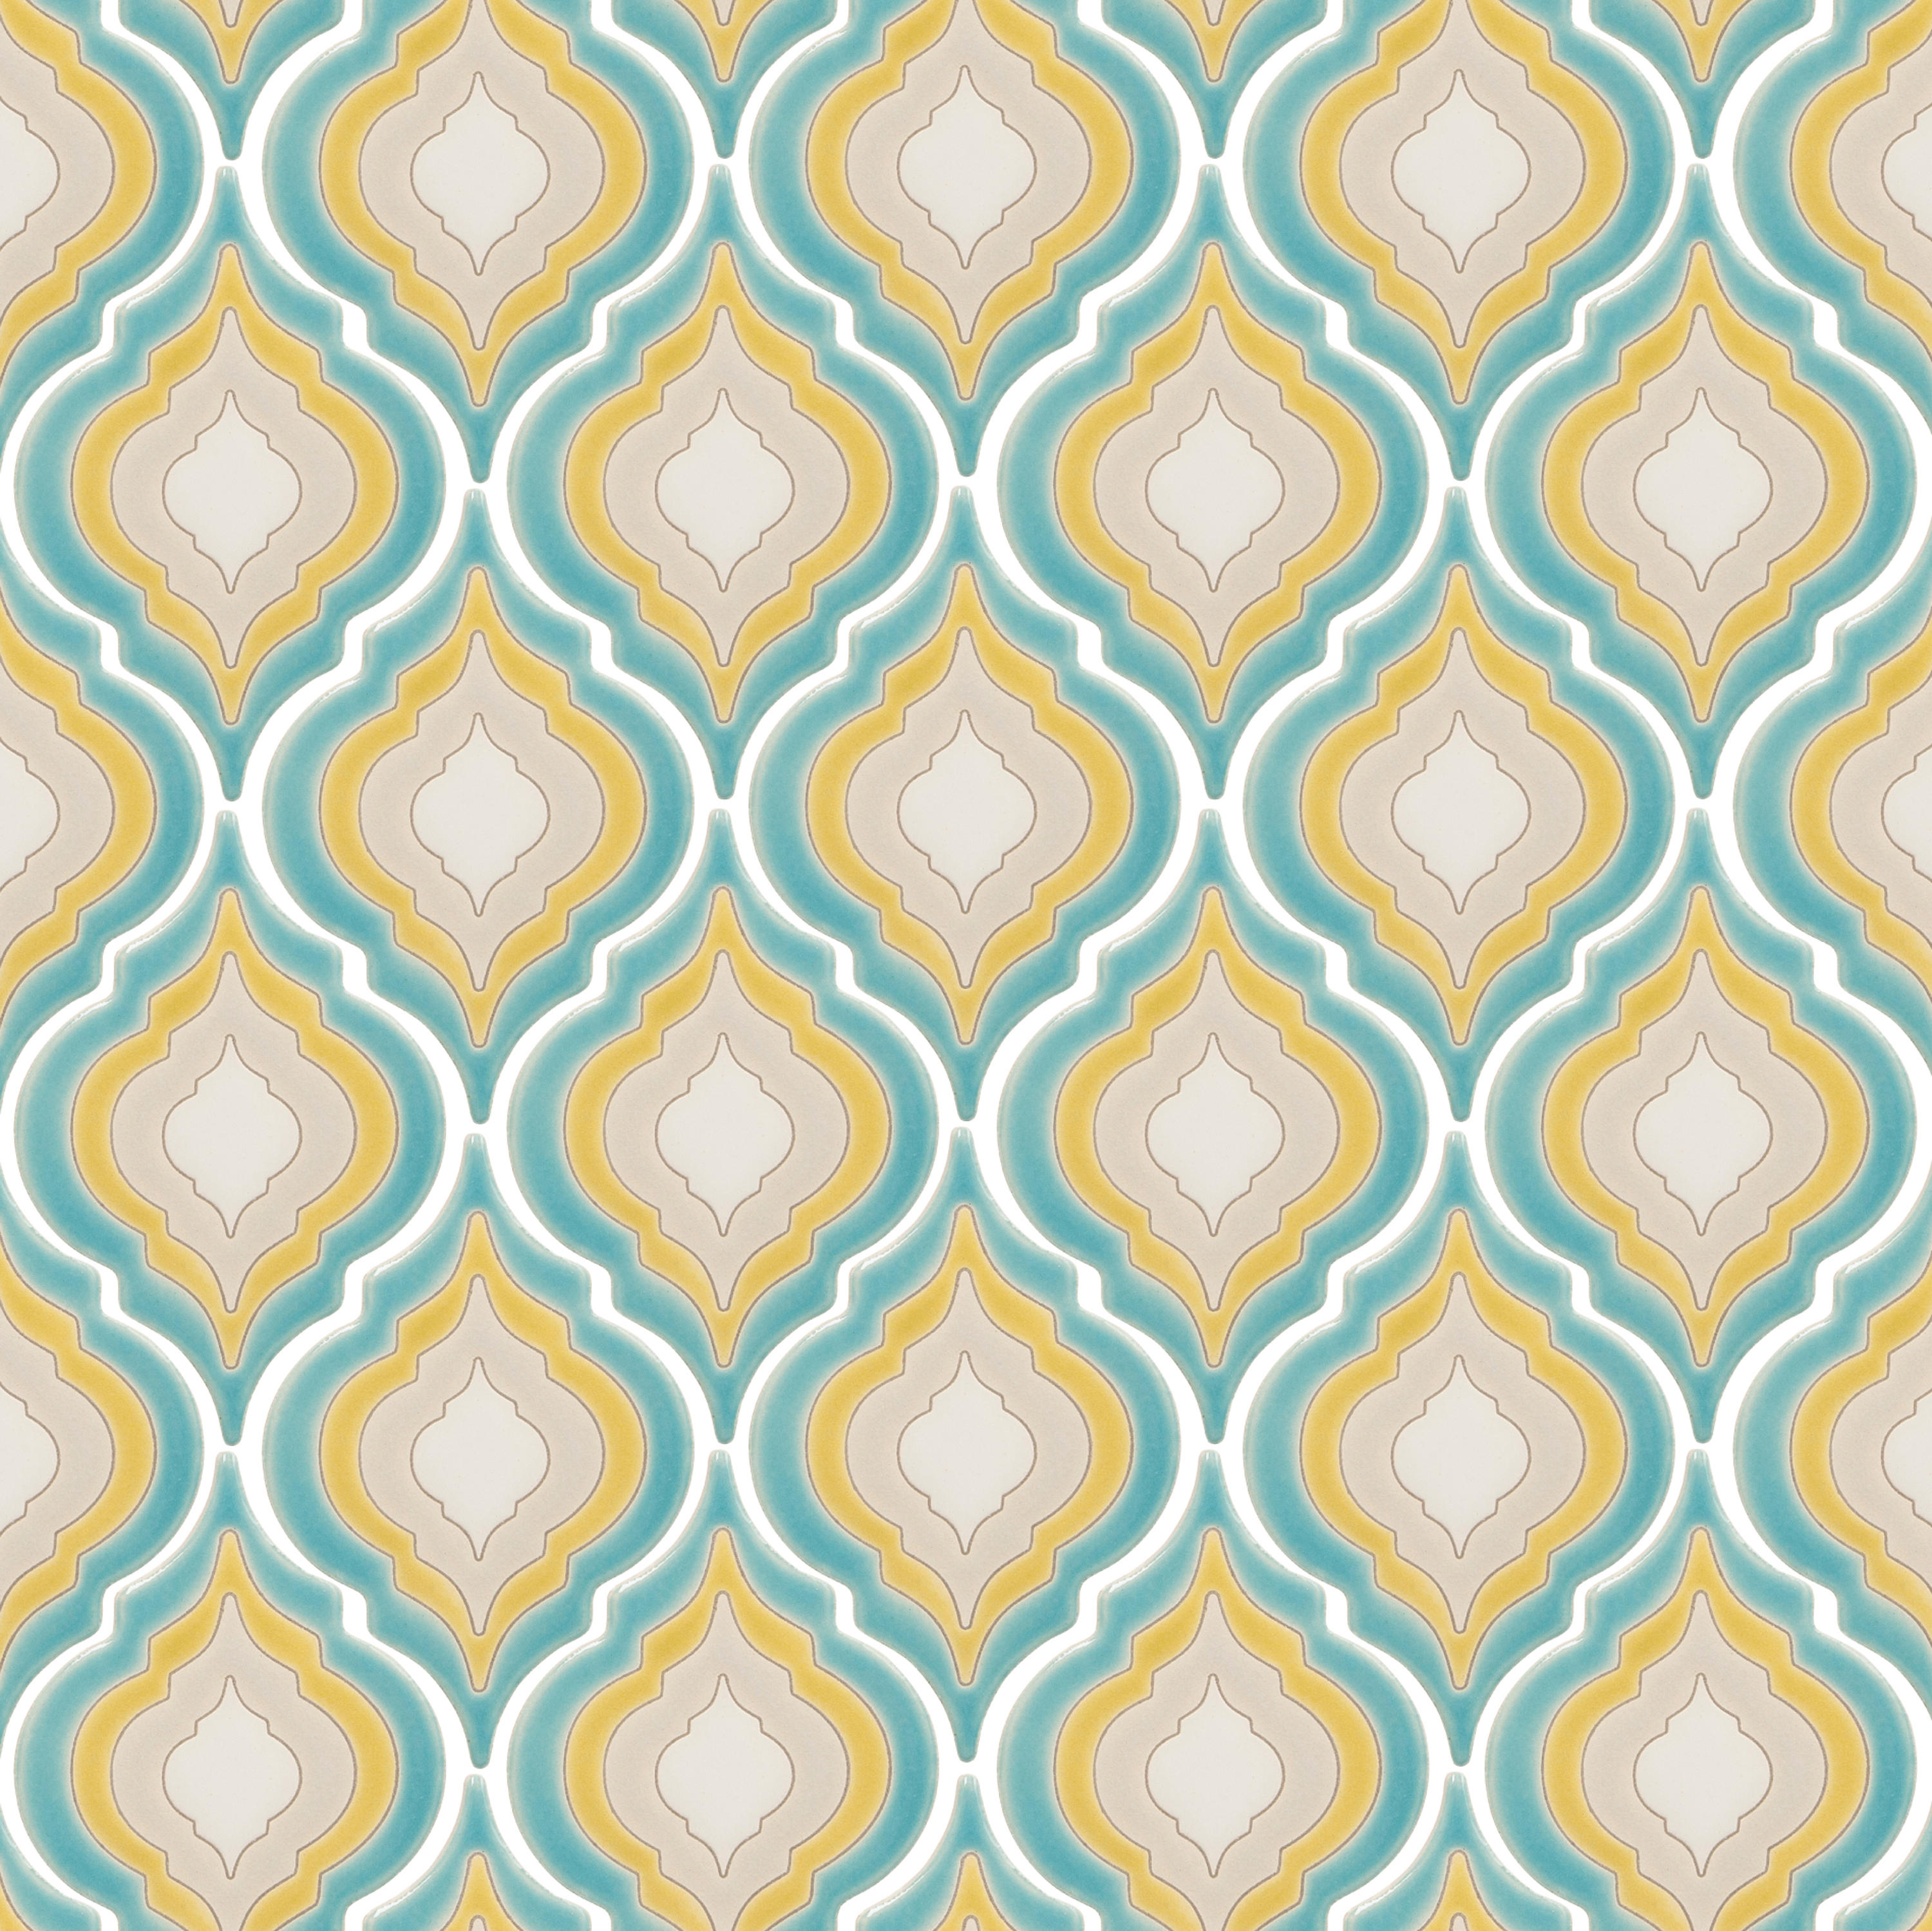 Genie amy ceramic tiles from tango tile architonic genie amy by tango tile ceramic tiles dailygadgetfo Choice Image